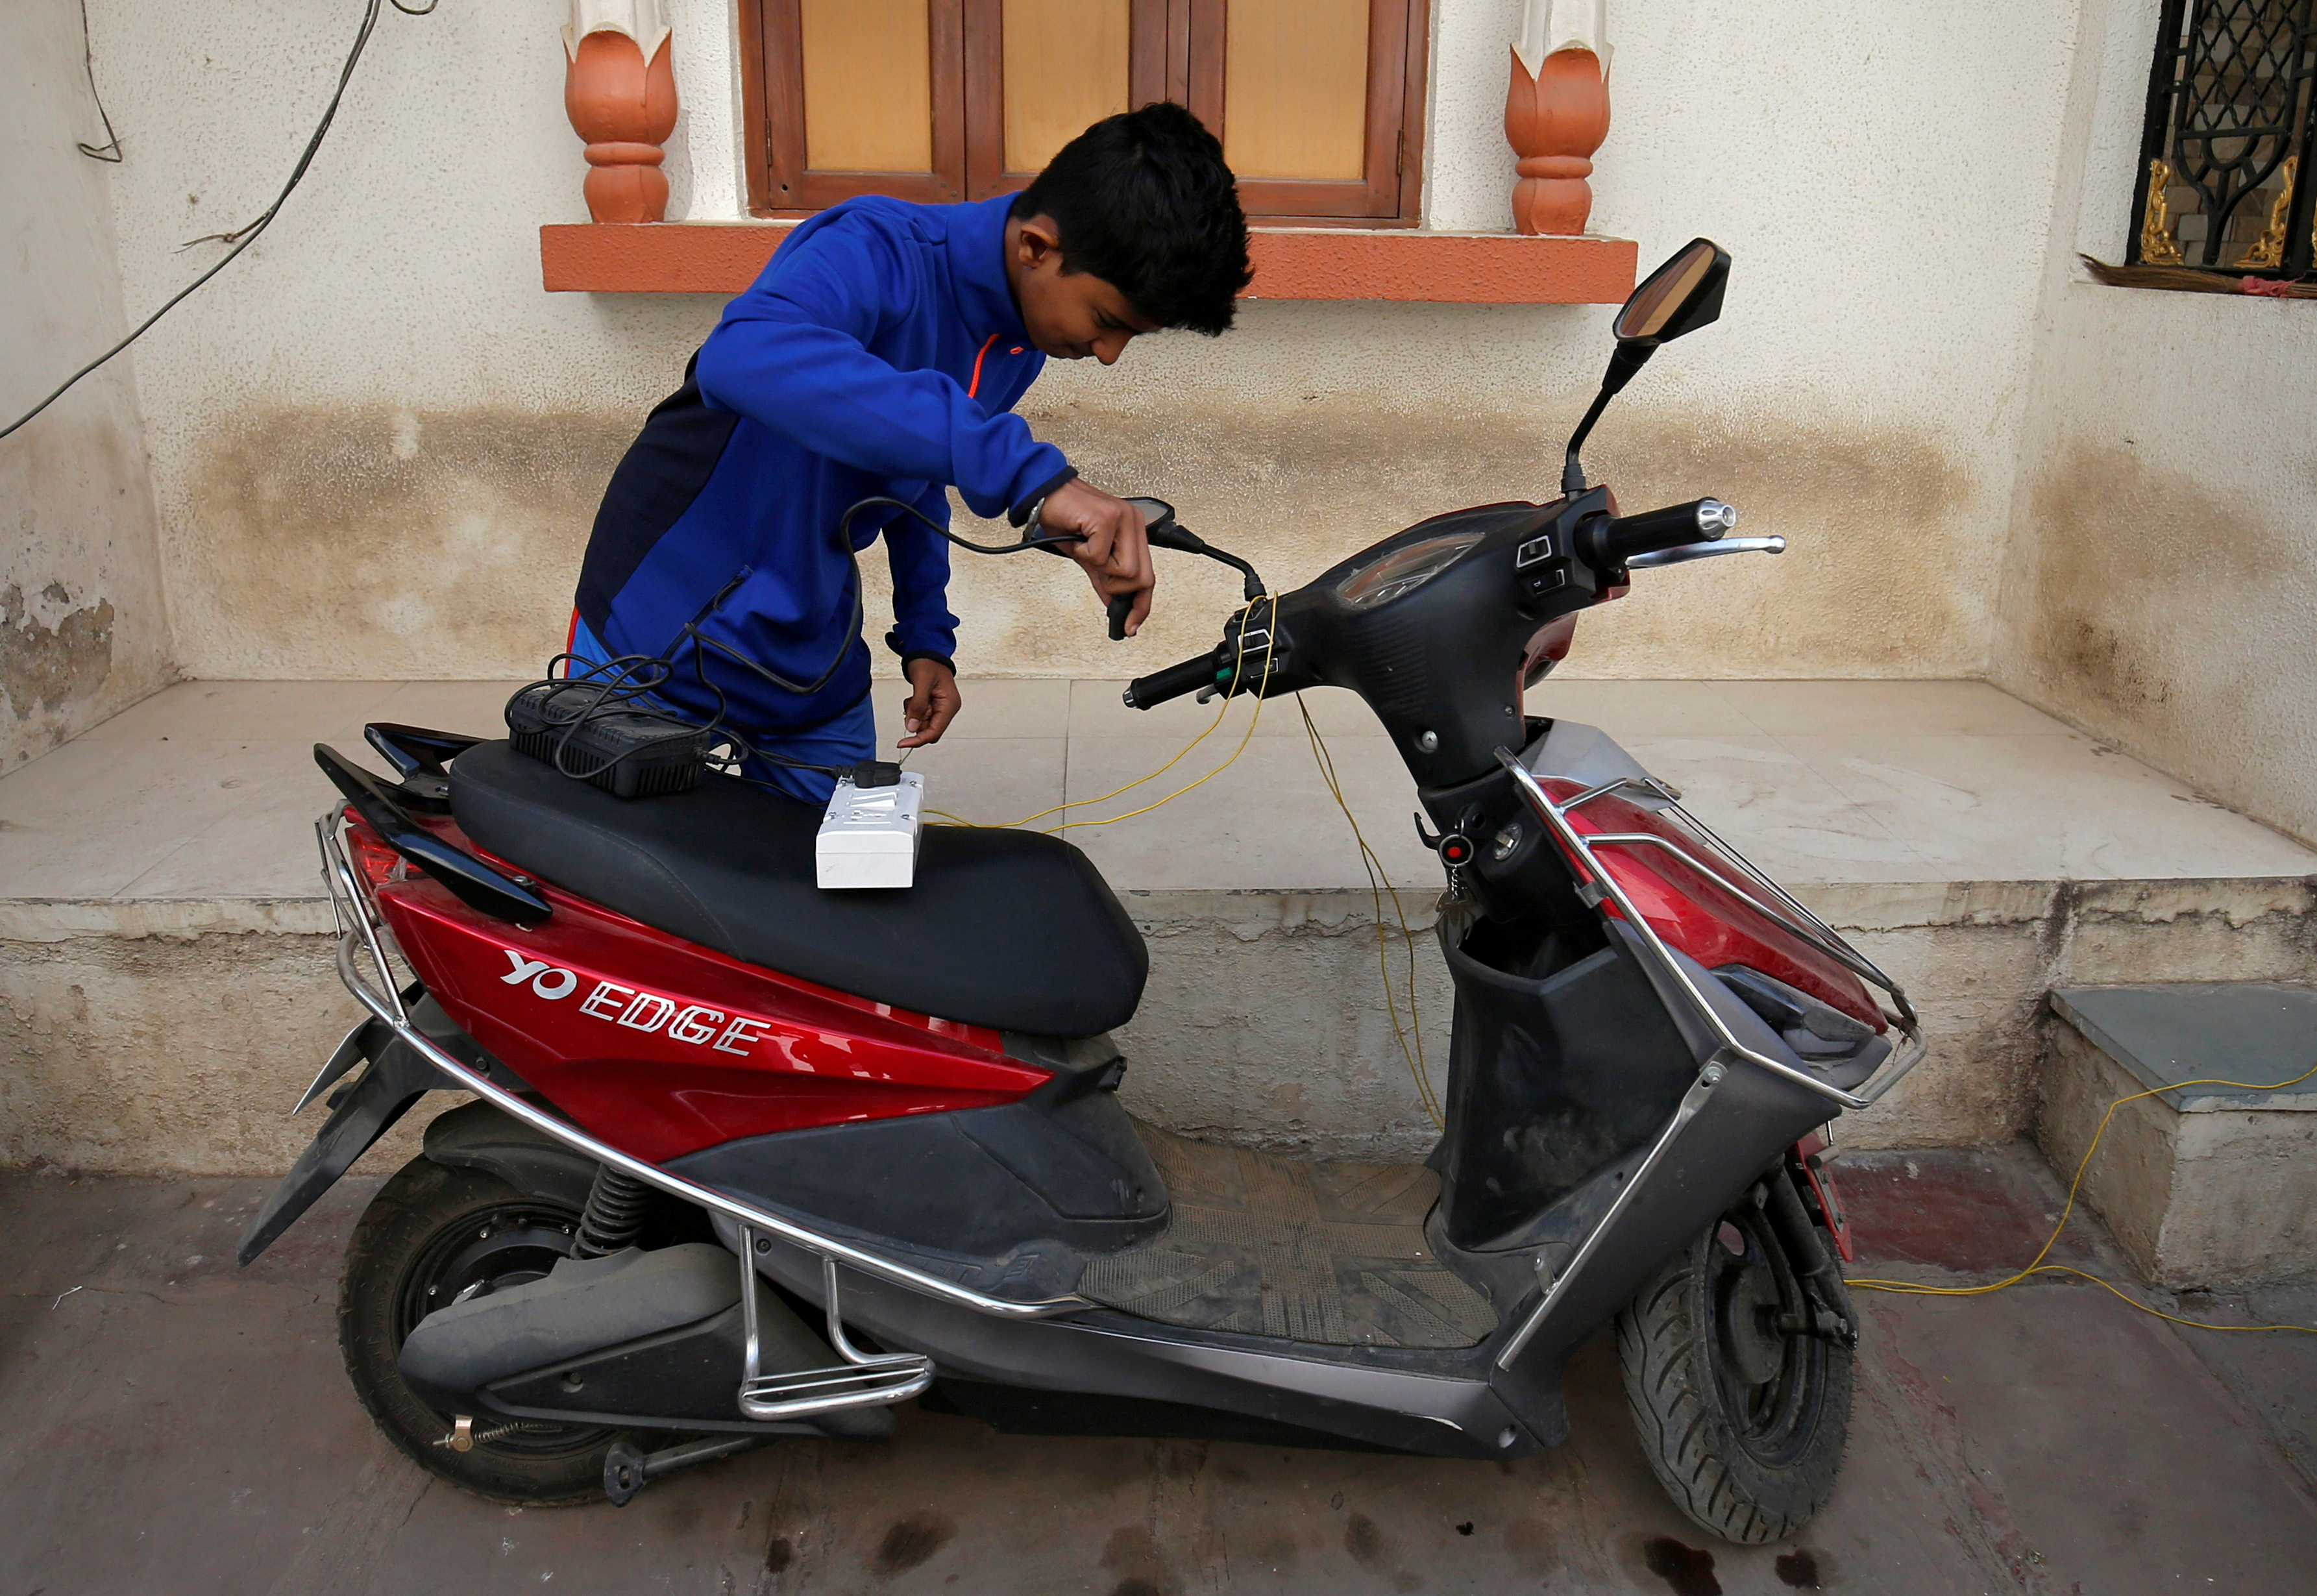 A boy prepares to recharge his electric scooter outside his home in Ahmedabad, India, December 30, 2018. Picture taken December 30, 2018. REUTERS/Amit Dave/File Photo